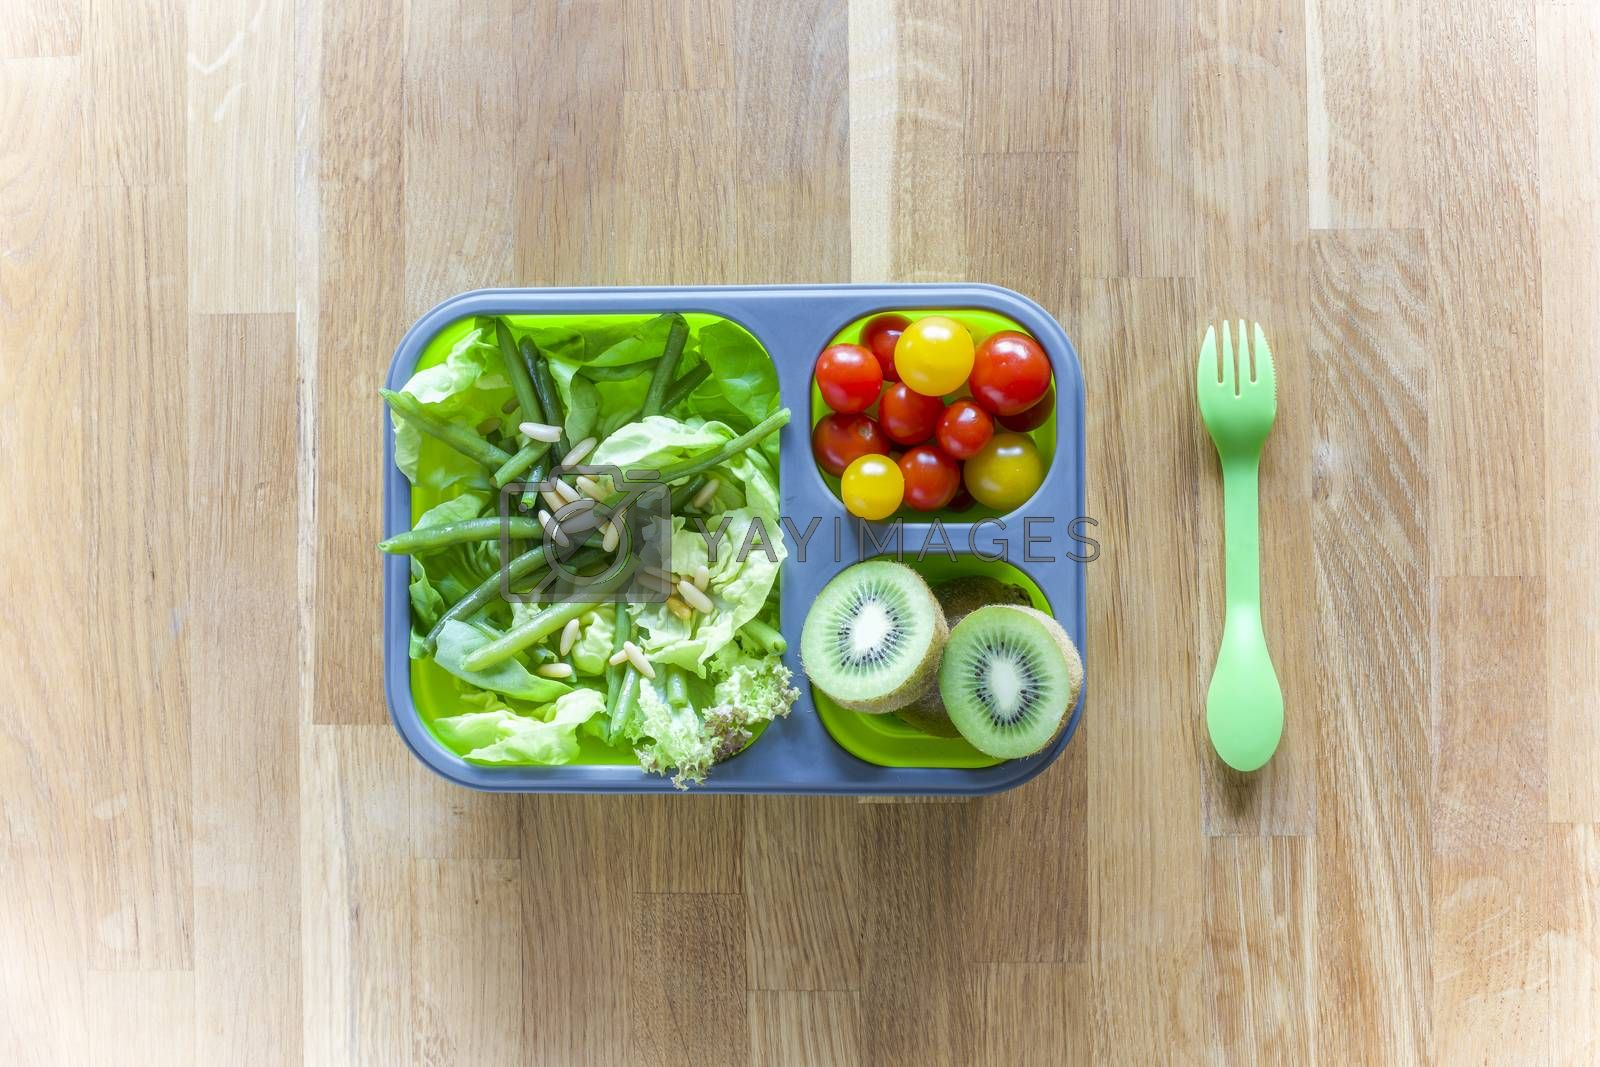 Collapsible silicon lunch box with food (green salads, tomatoes, kiwi) on wooden table